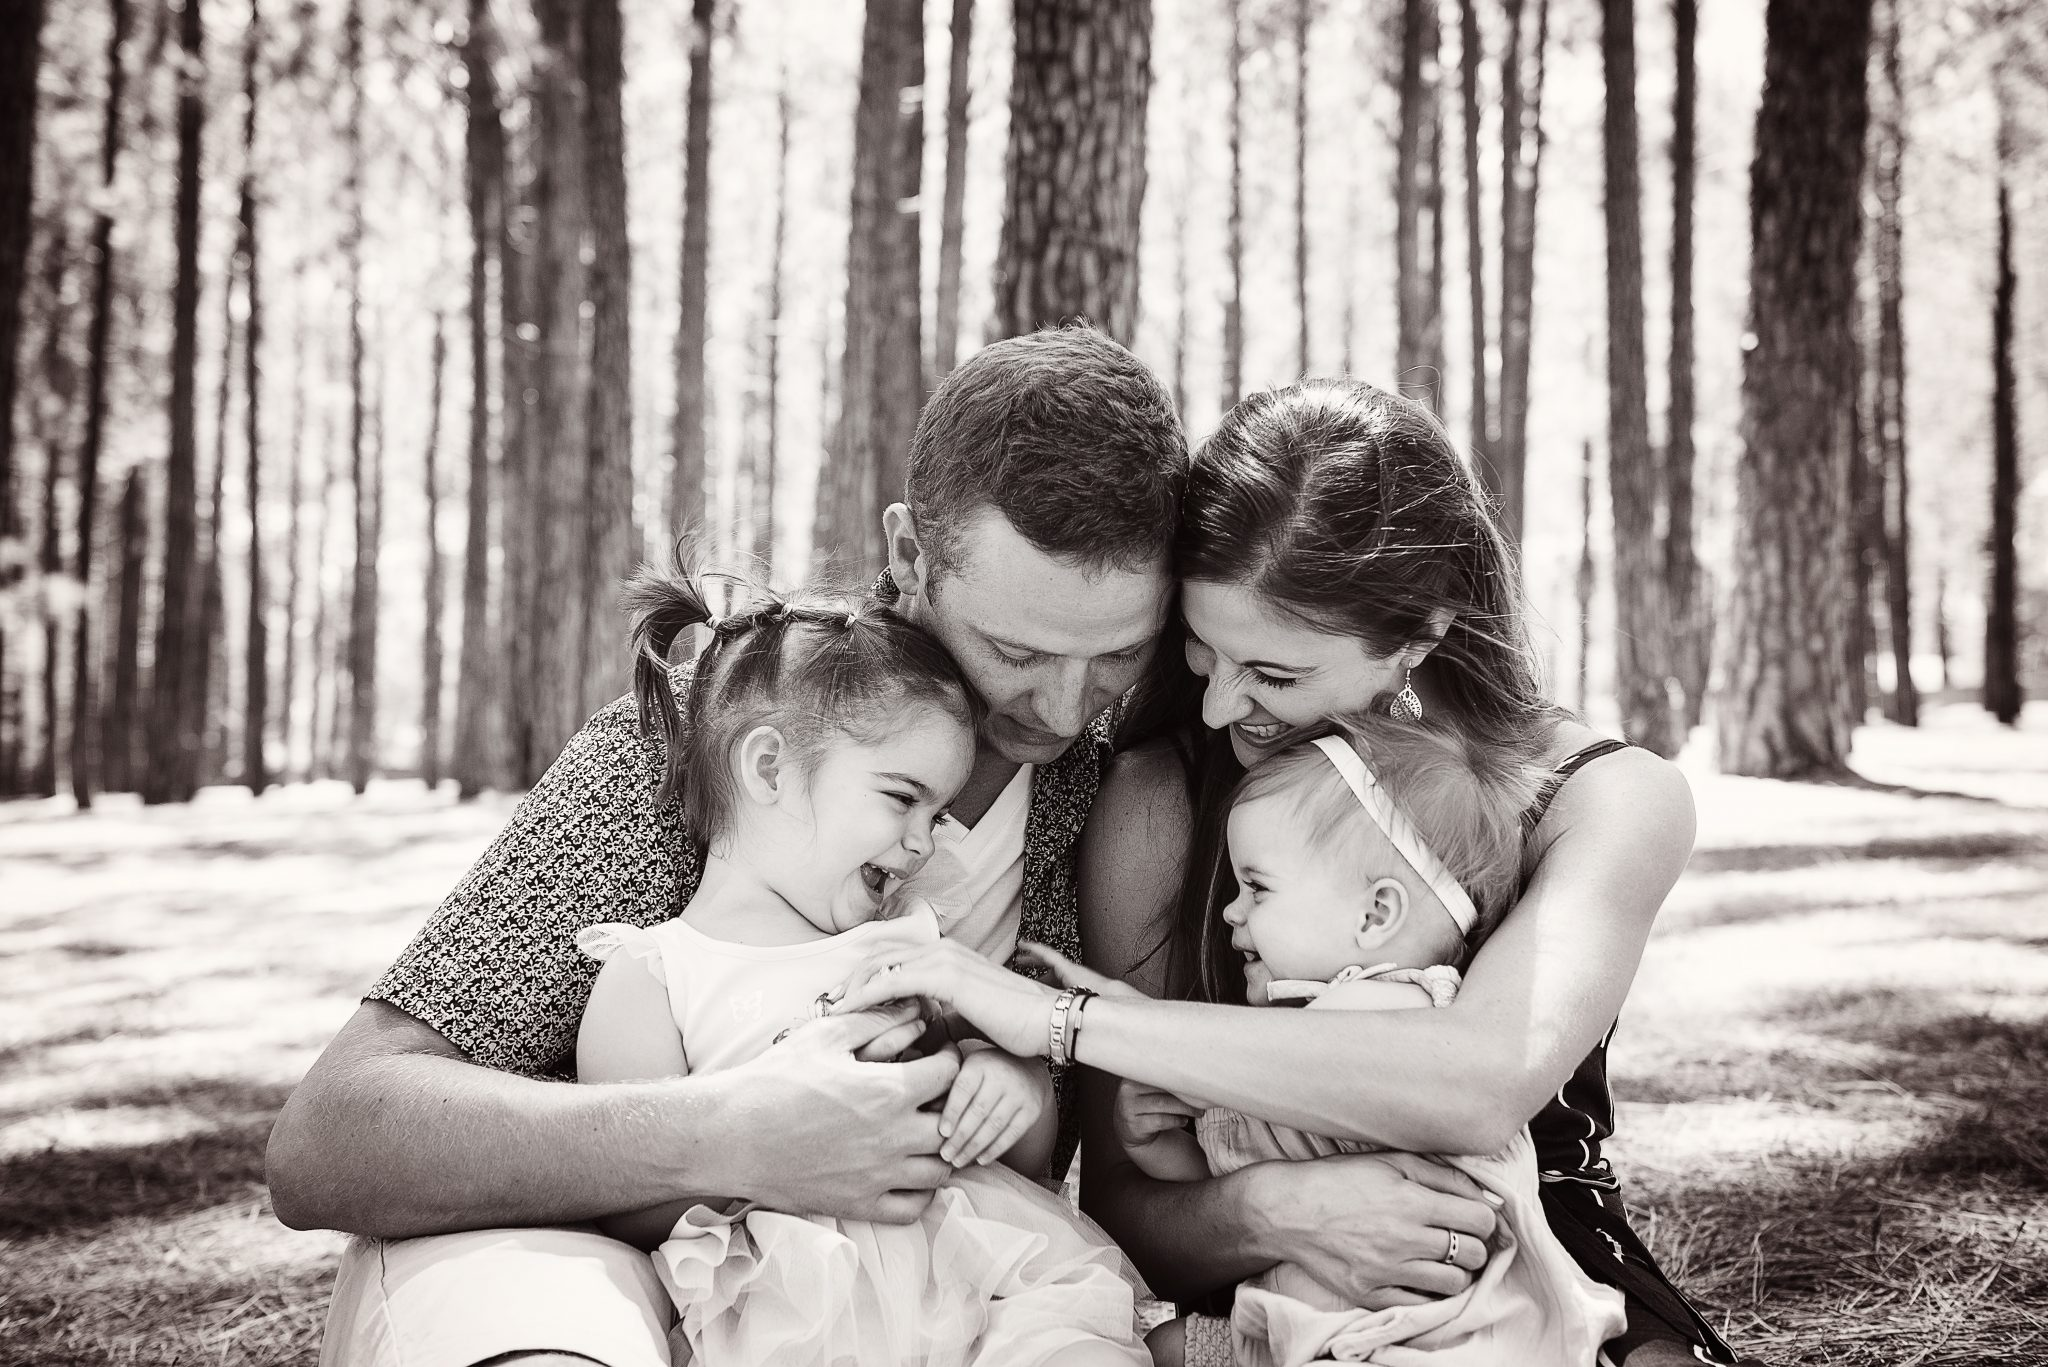 Family - Capturing real, beautiful moments to last a lifetime!